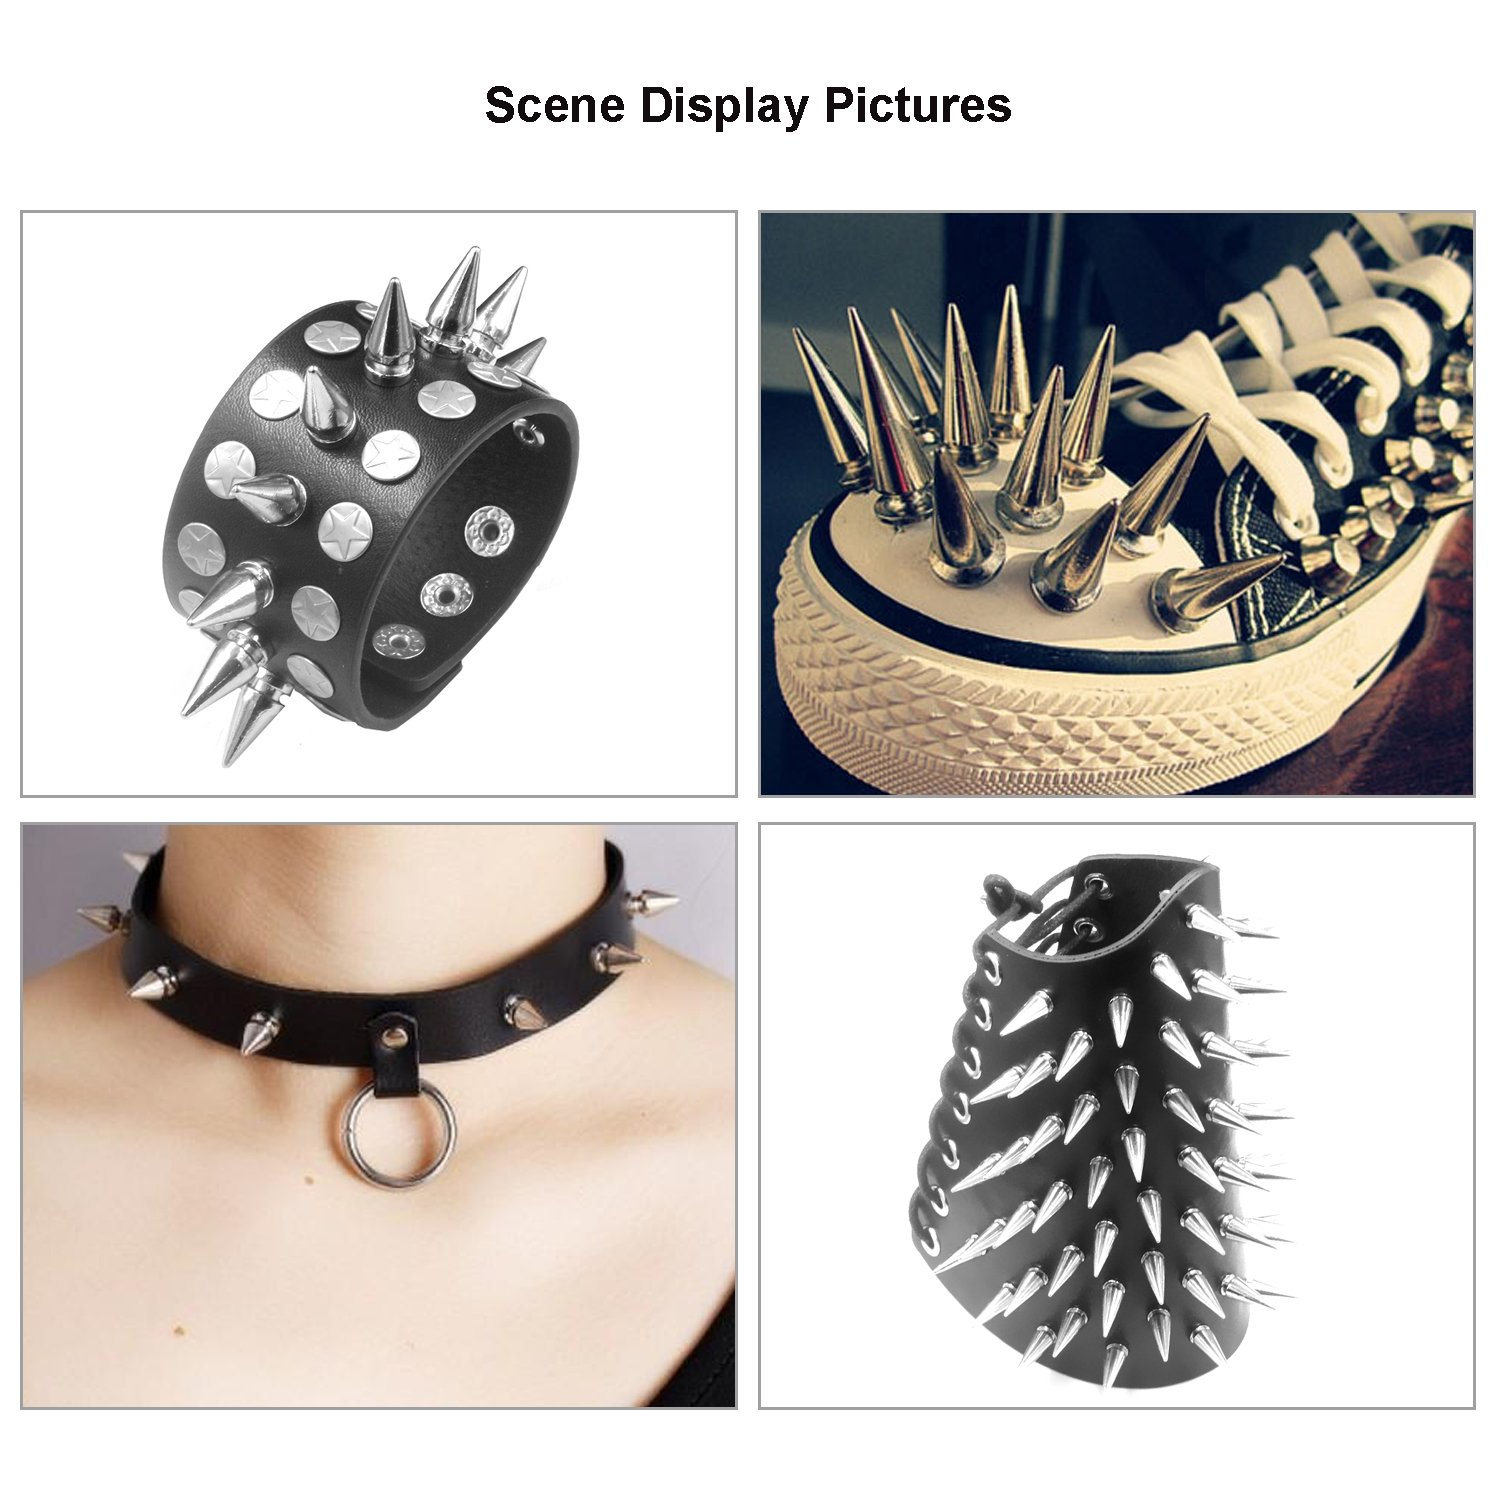 Wadoy Spikes Screwback and Bullet Studs 10x25mm Silver 10 Packs Spikes Screwback DIY Belt Bag Leather Craft Clothes Rivet